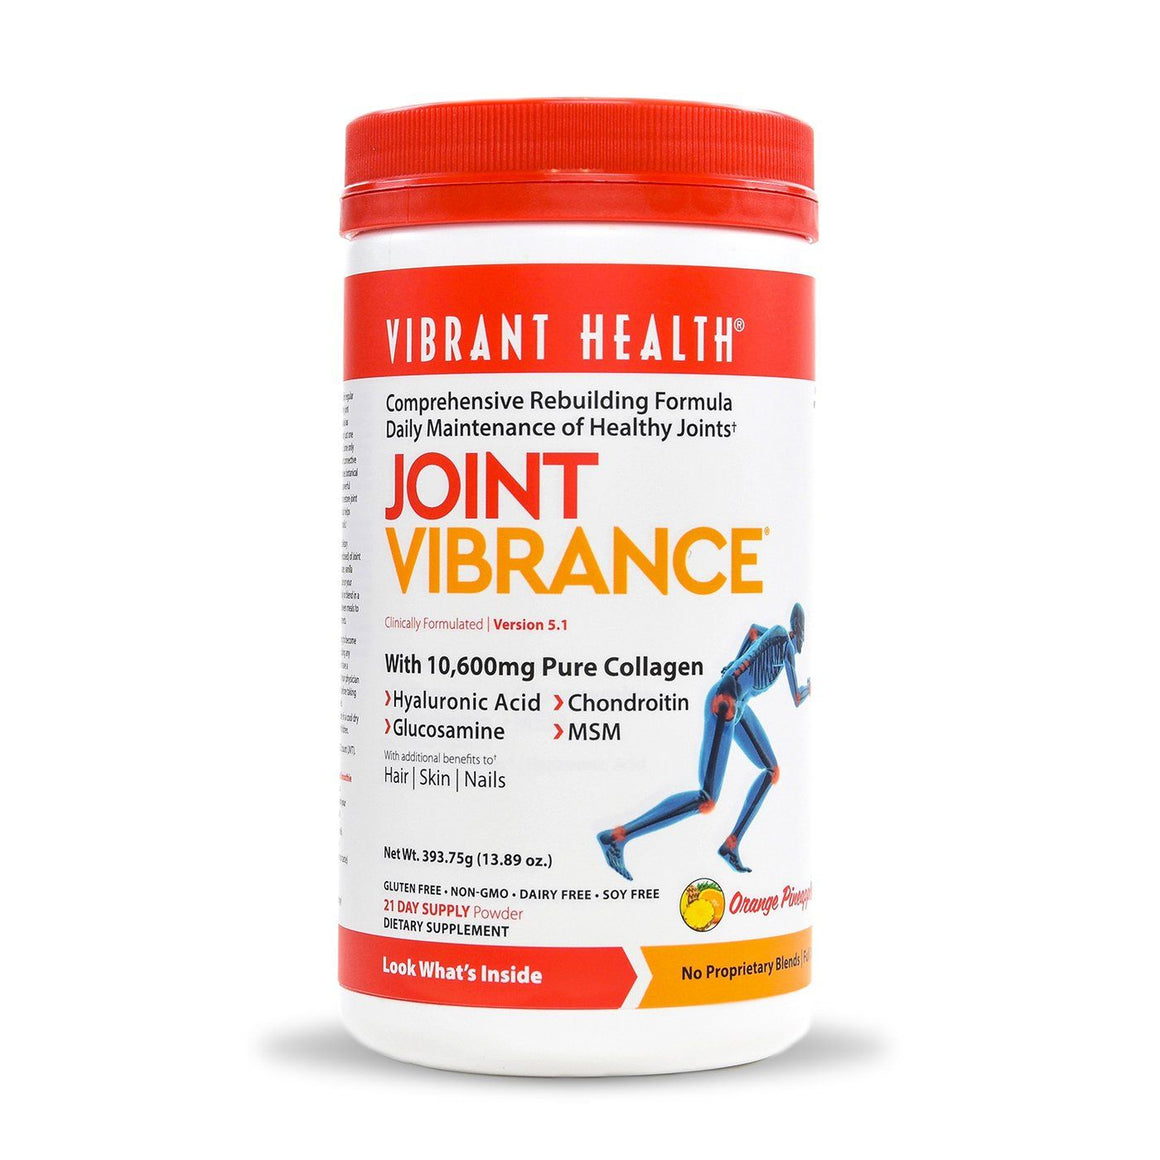 A bottle of Vibrant Health Joint Vibrance